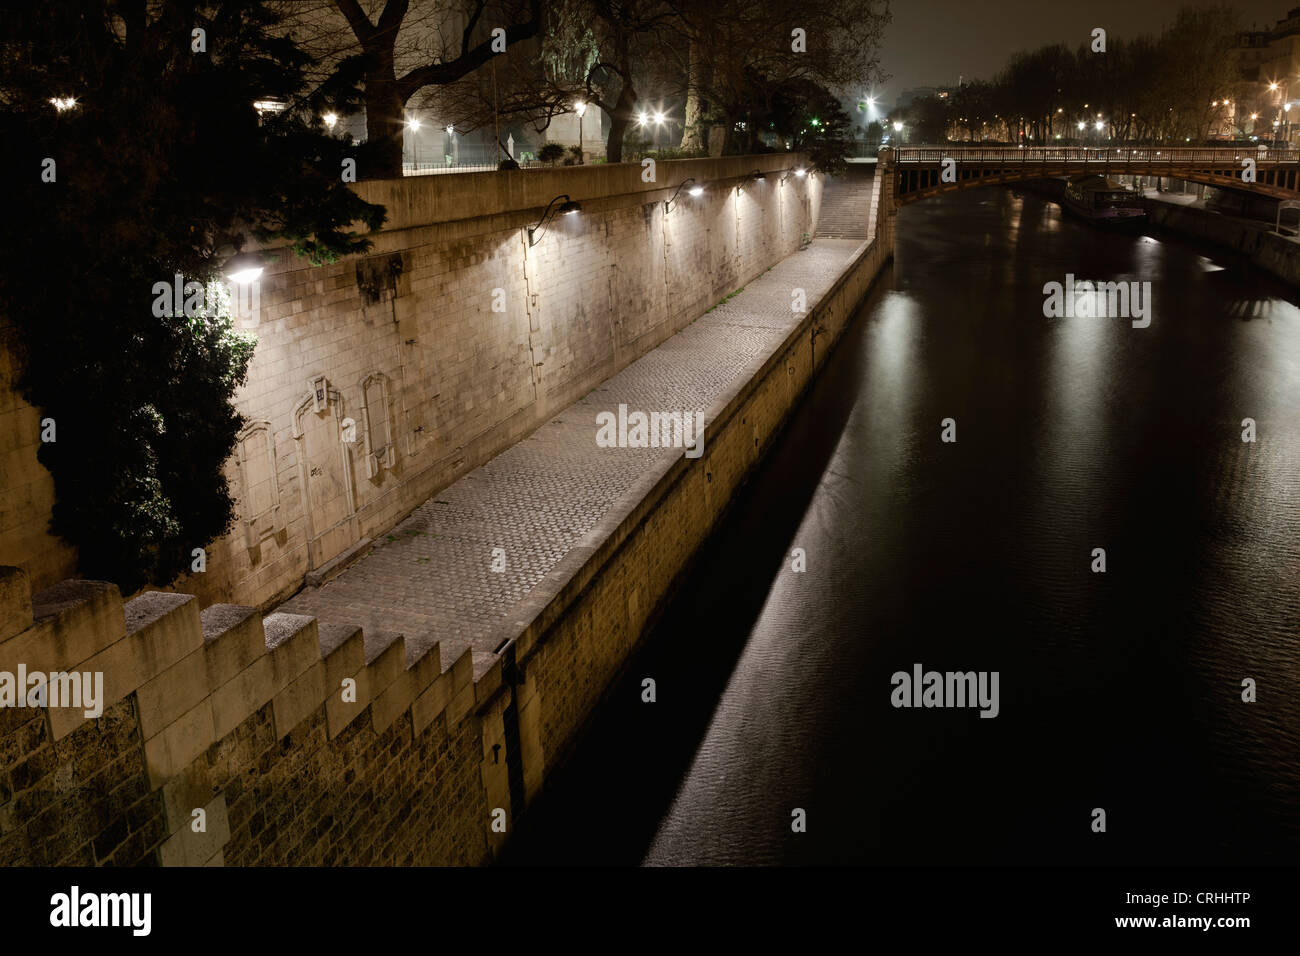 Seine river by night, Paris, France - Stock Image